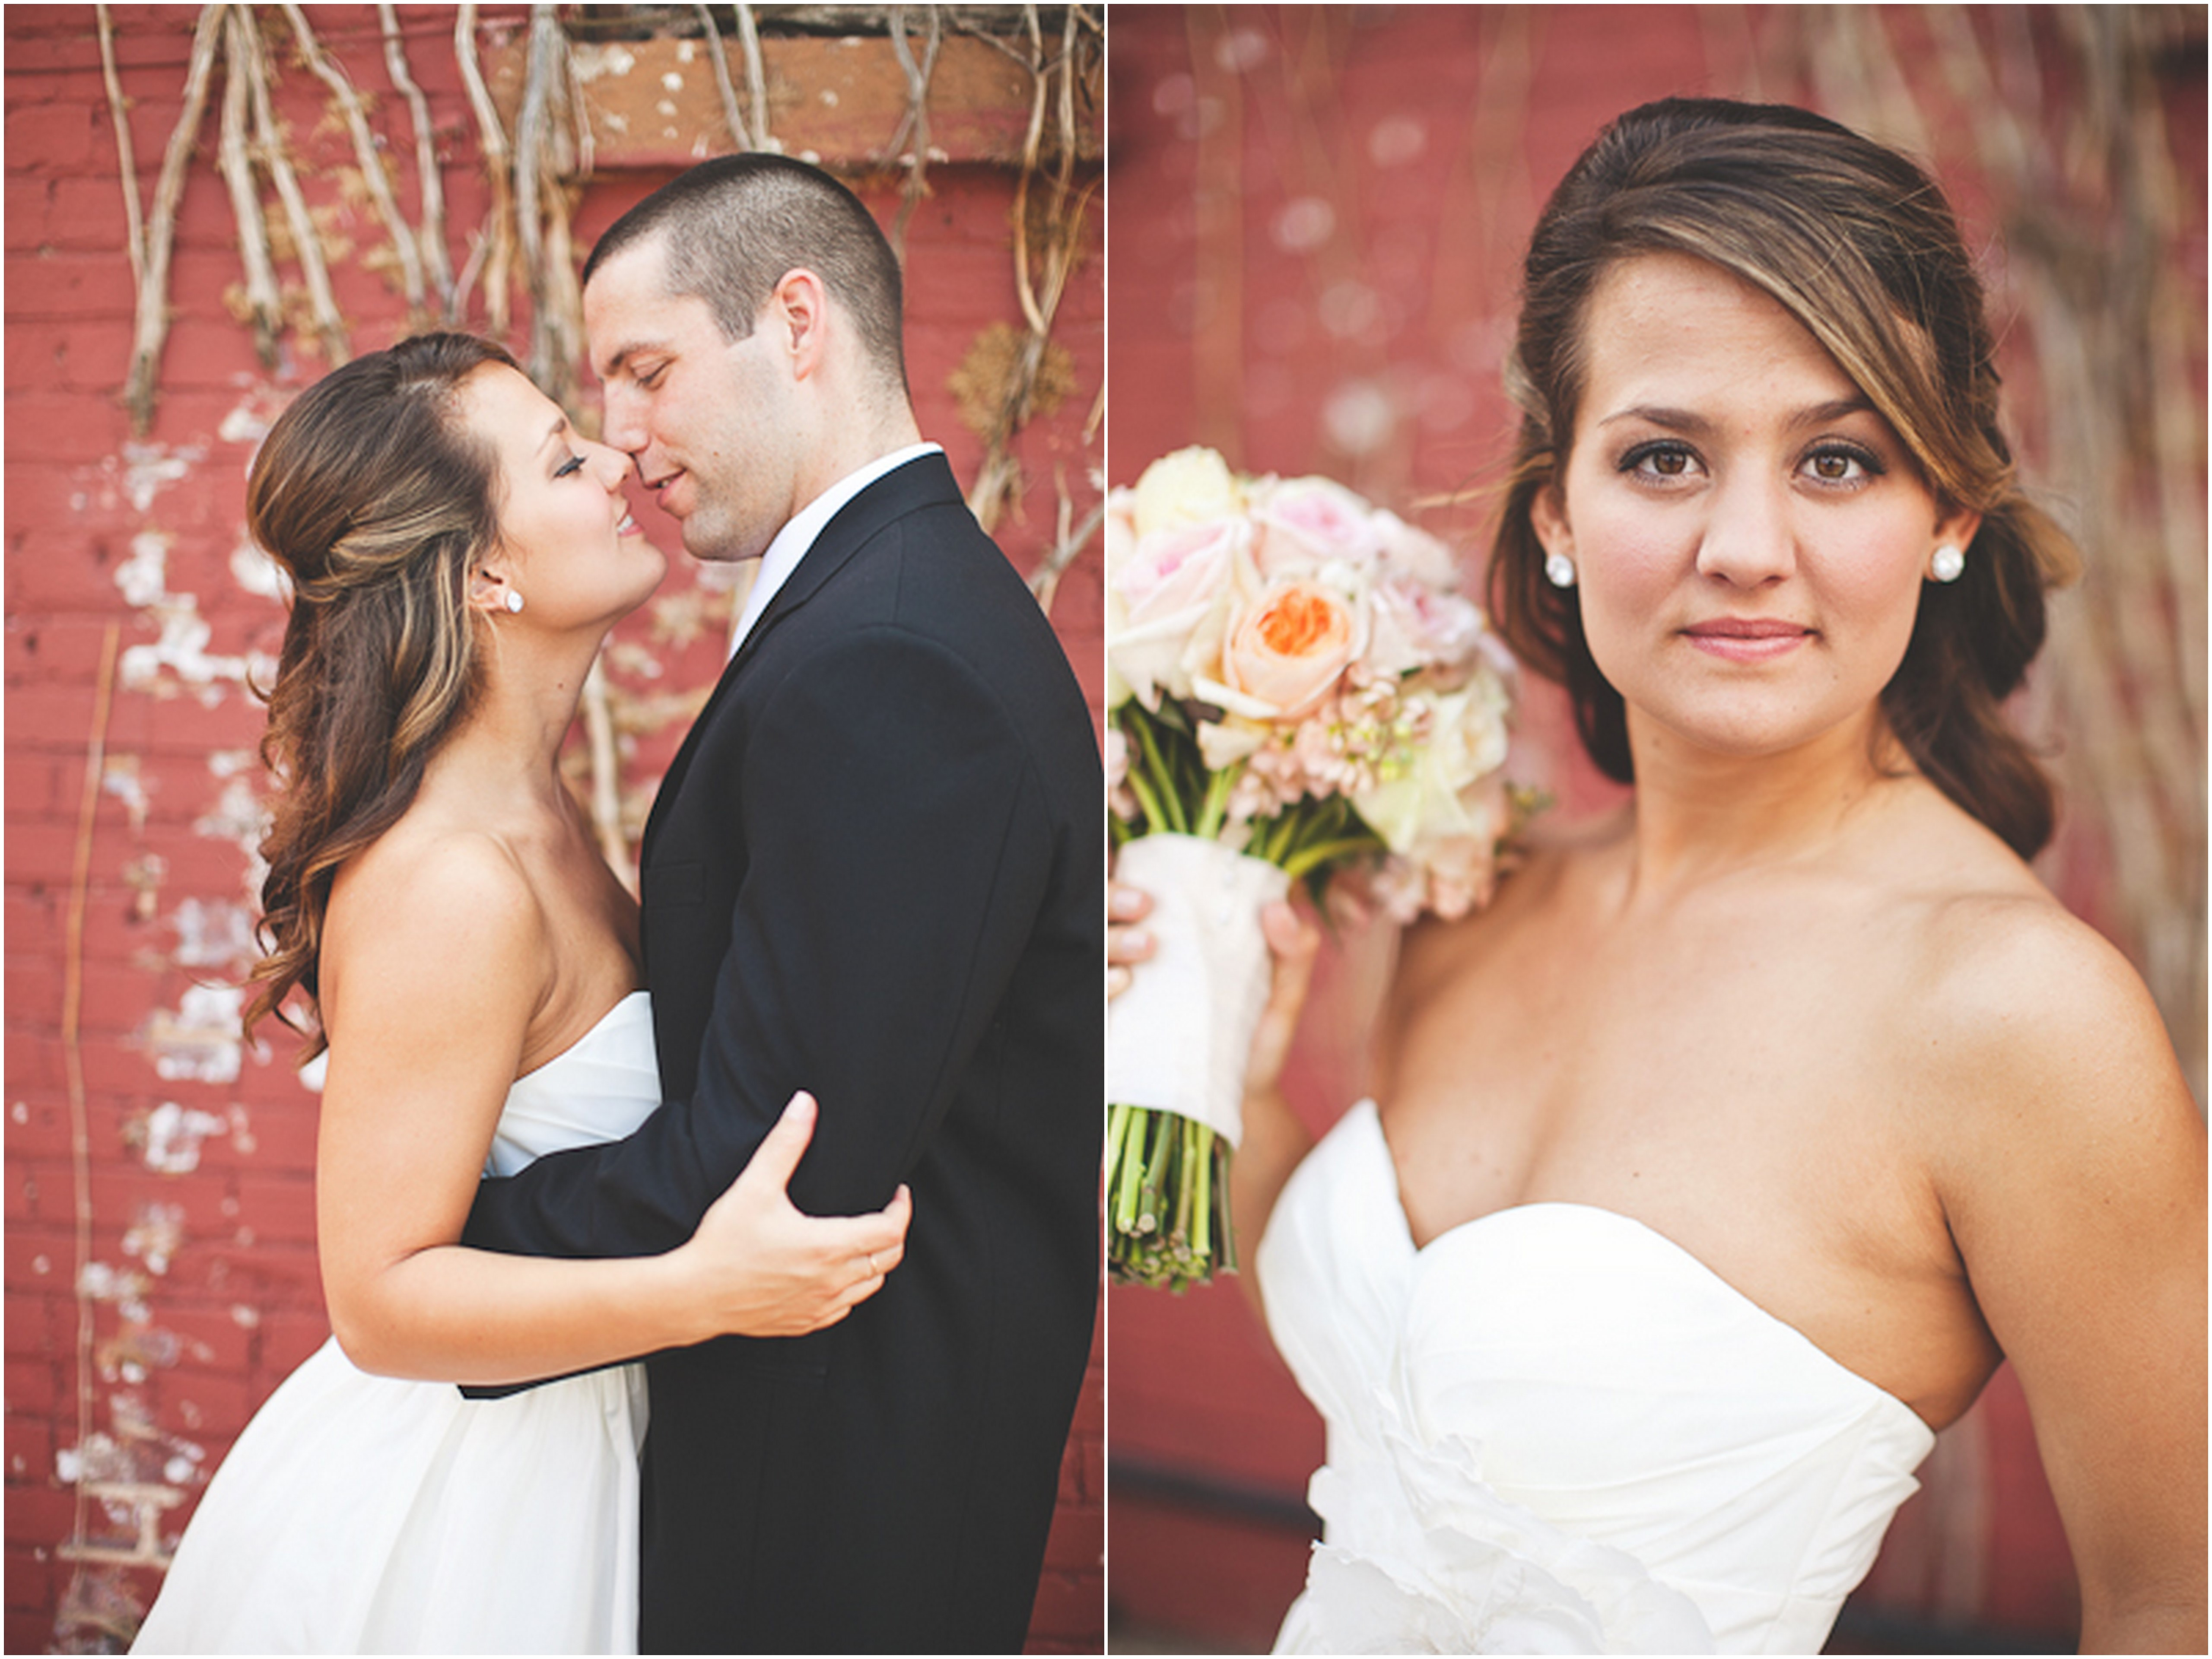 Inspired by This Real Wedding Rustic Wedding in an Alabama Theater